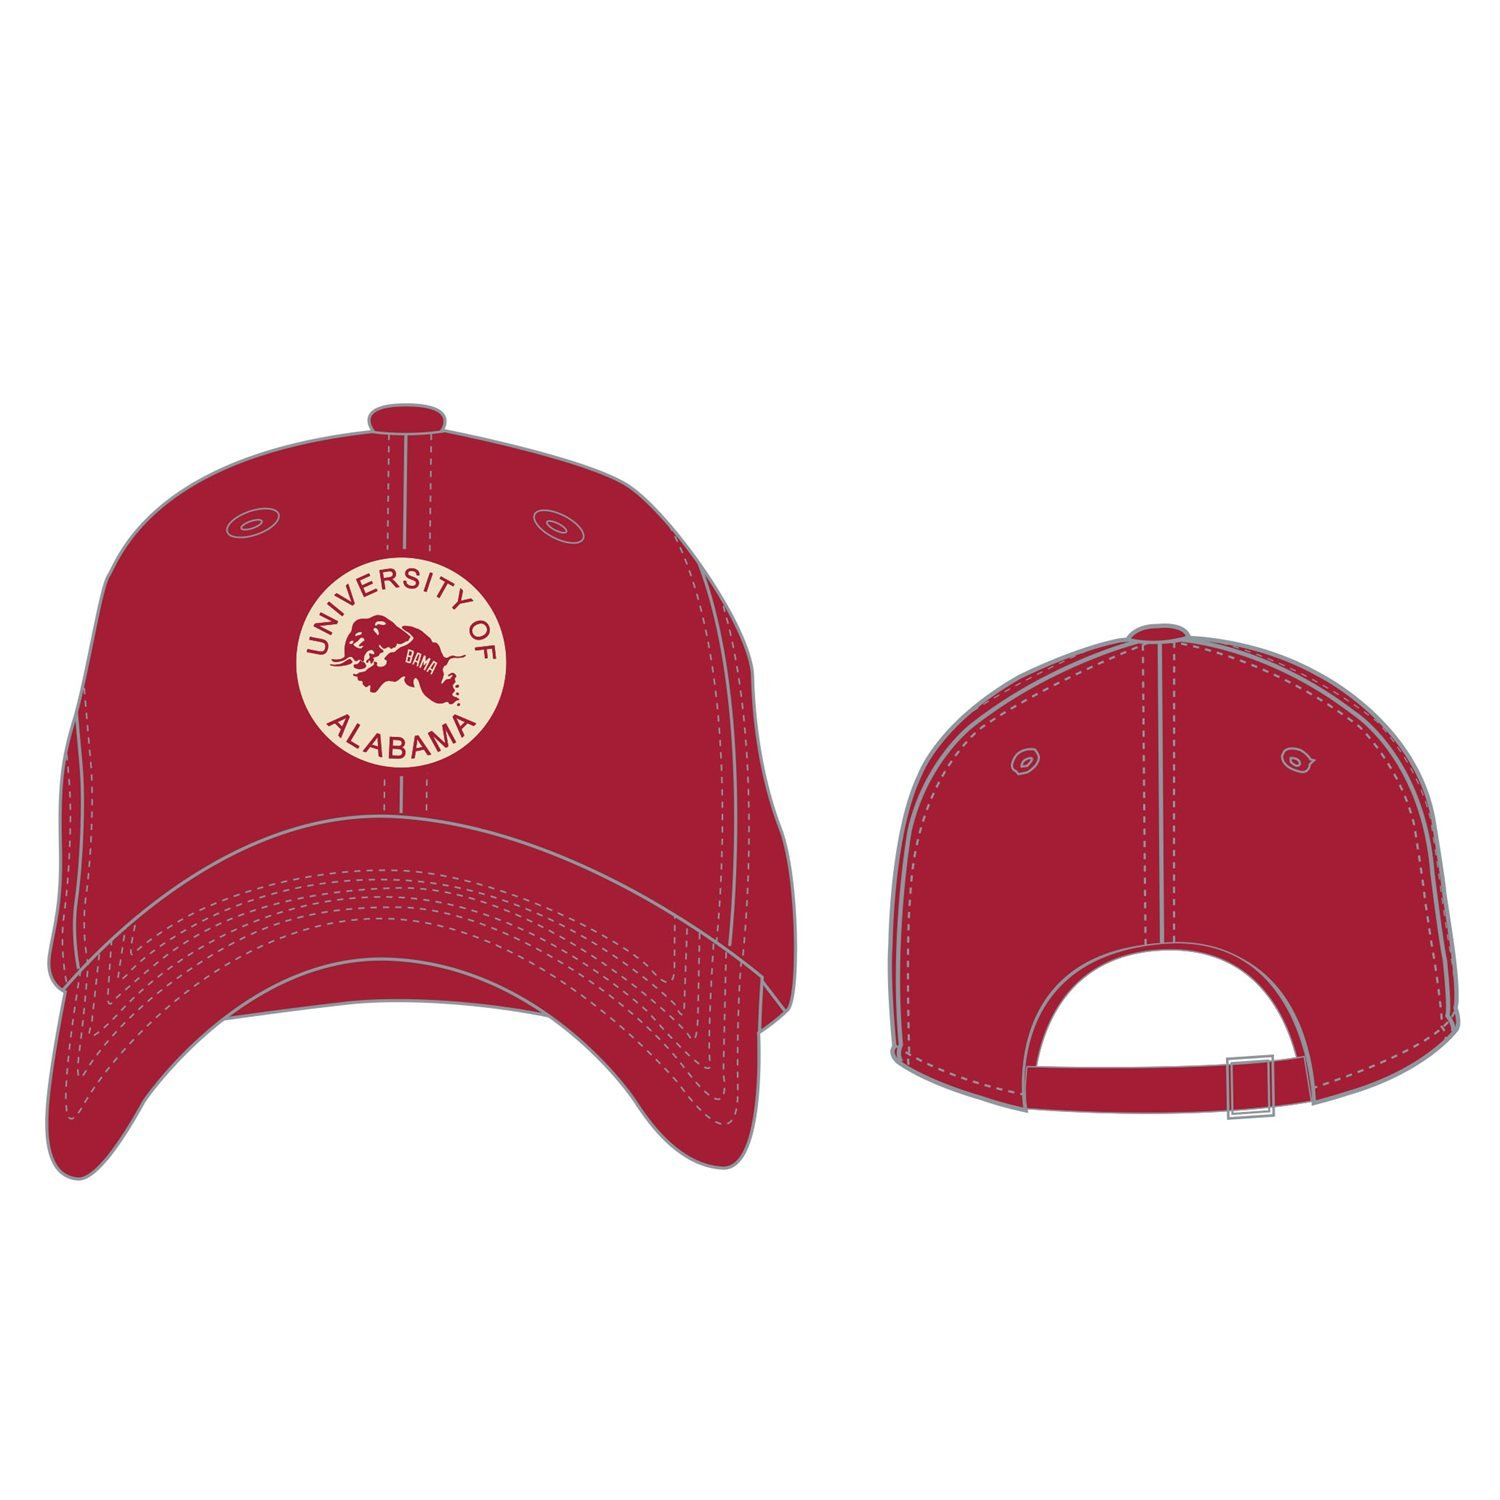 hot sale online 6efe9 4a124 Top of the World Vintage Crew Alabama Crimson Tide Adjustable Vault Team  Colored Hat  Amazon.in  Sports, Fitness   Outdoors